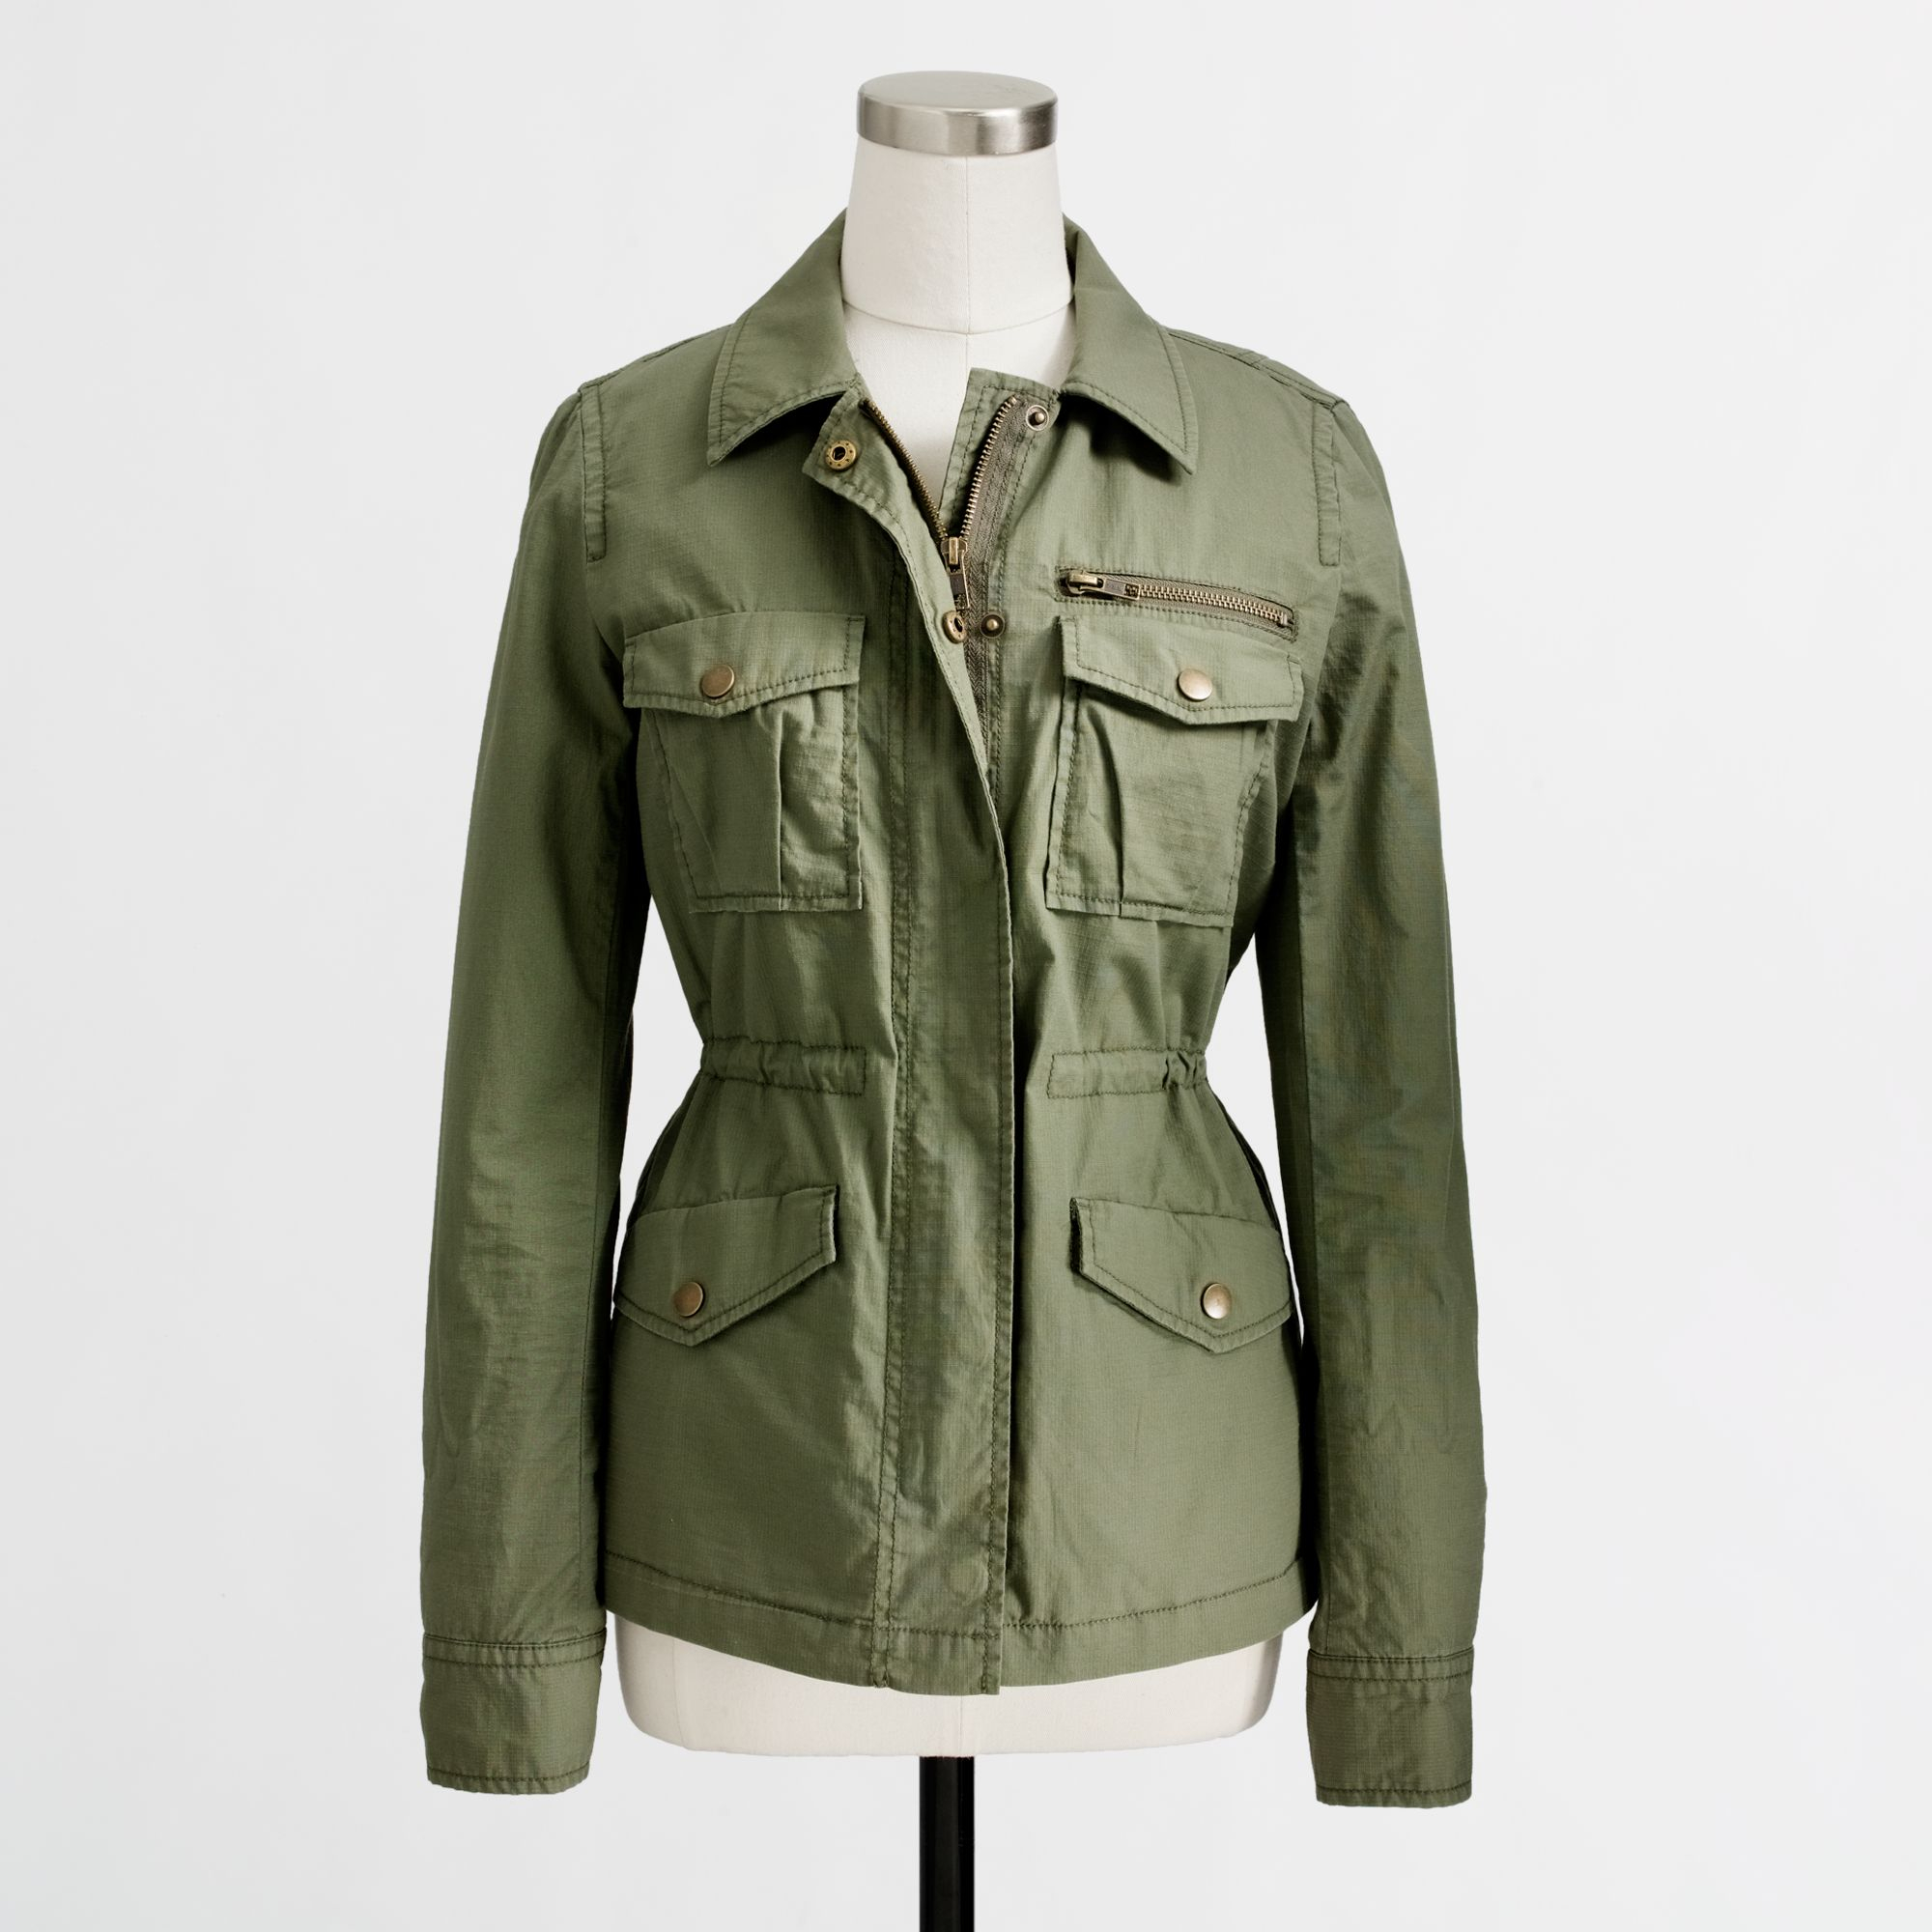 J.crew Factory Ripstop Utility Jacket in Green | Lyst